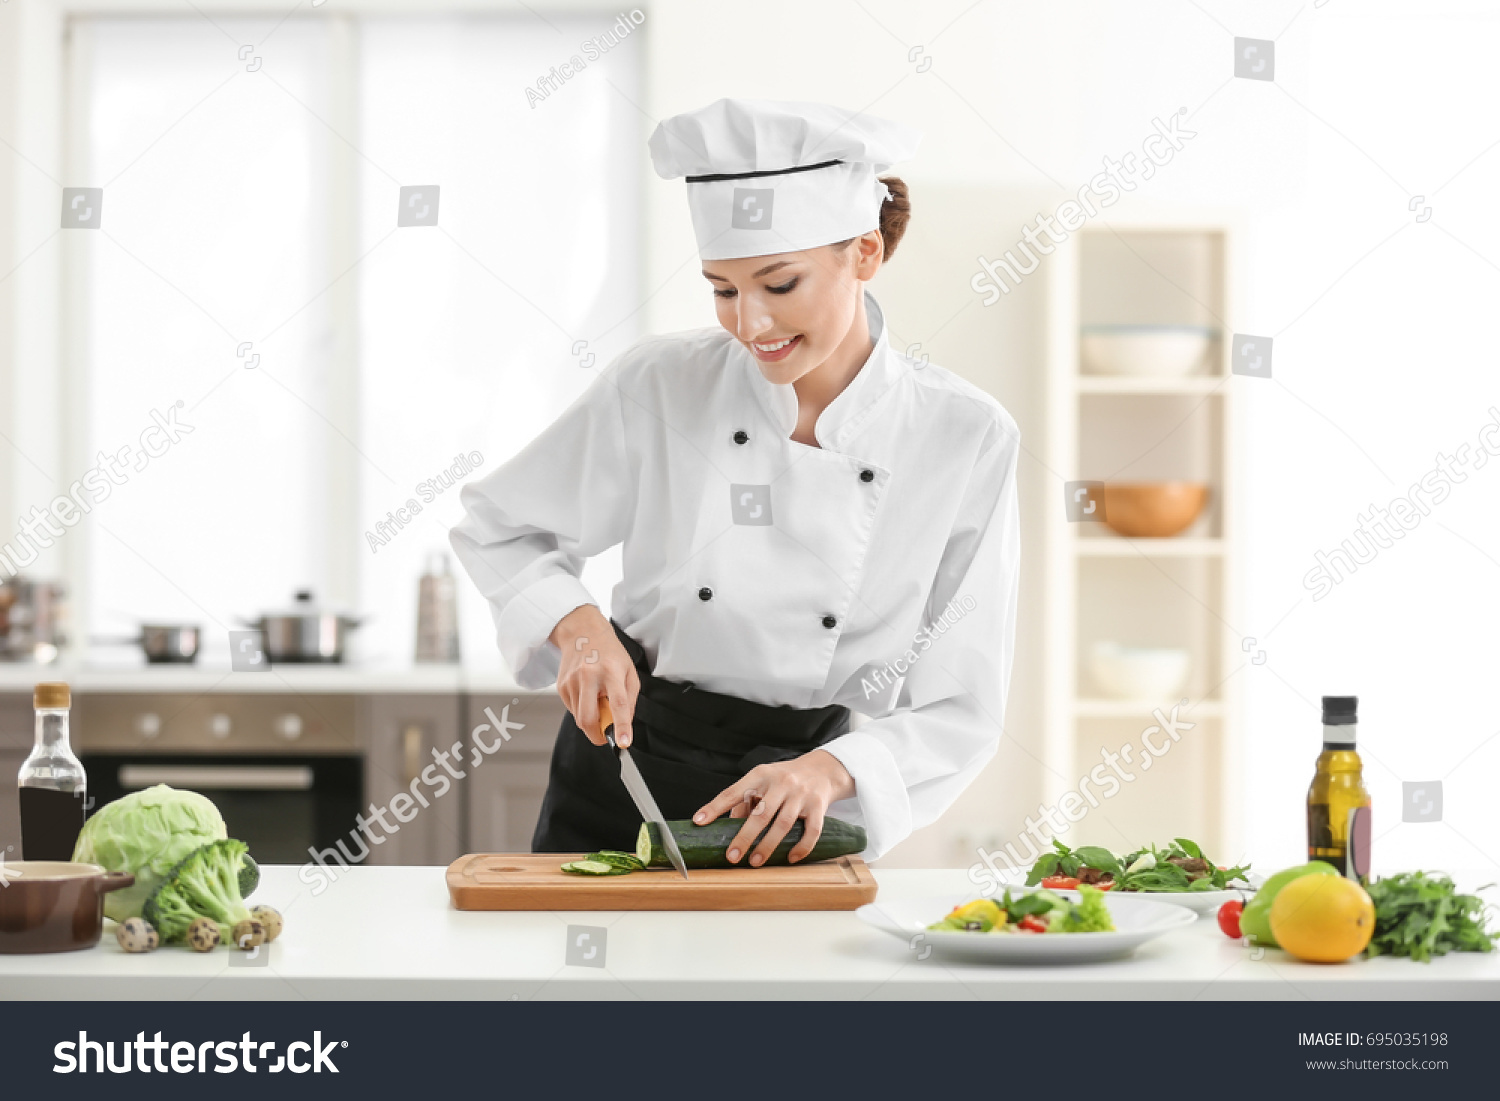 Young Female Chef Cooking Kitchen Stock Photo (Edit Now)- Shutterstock